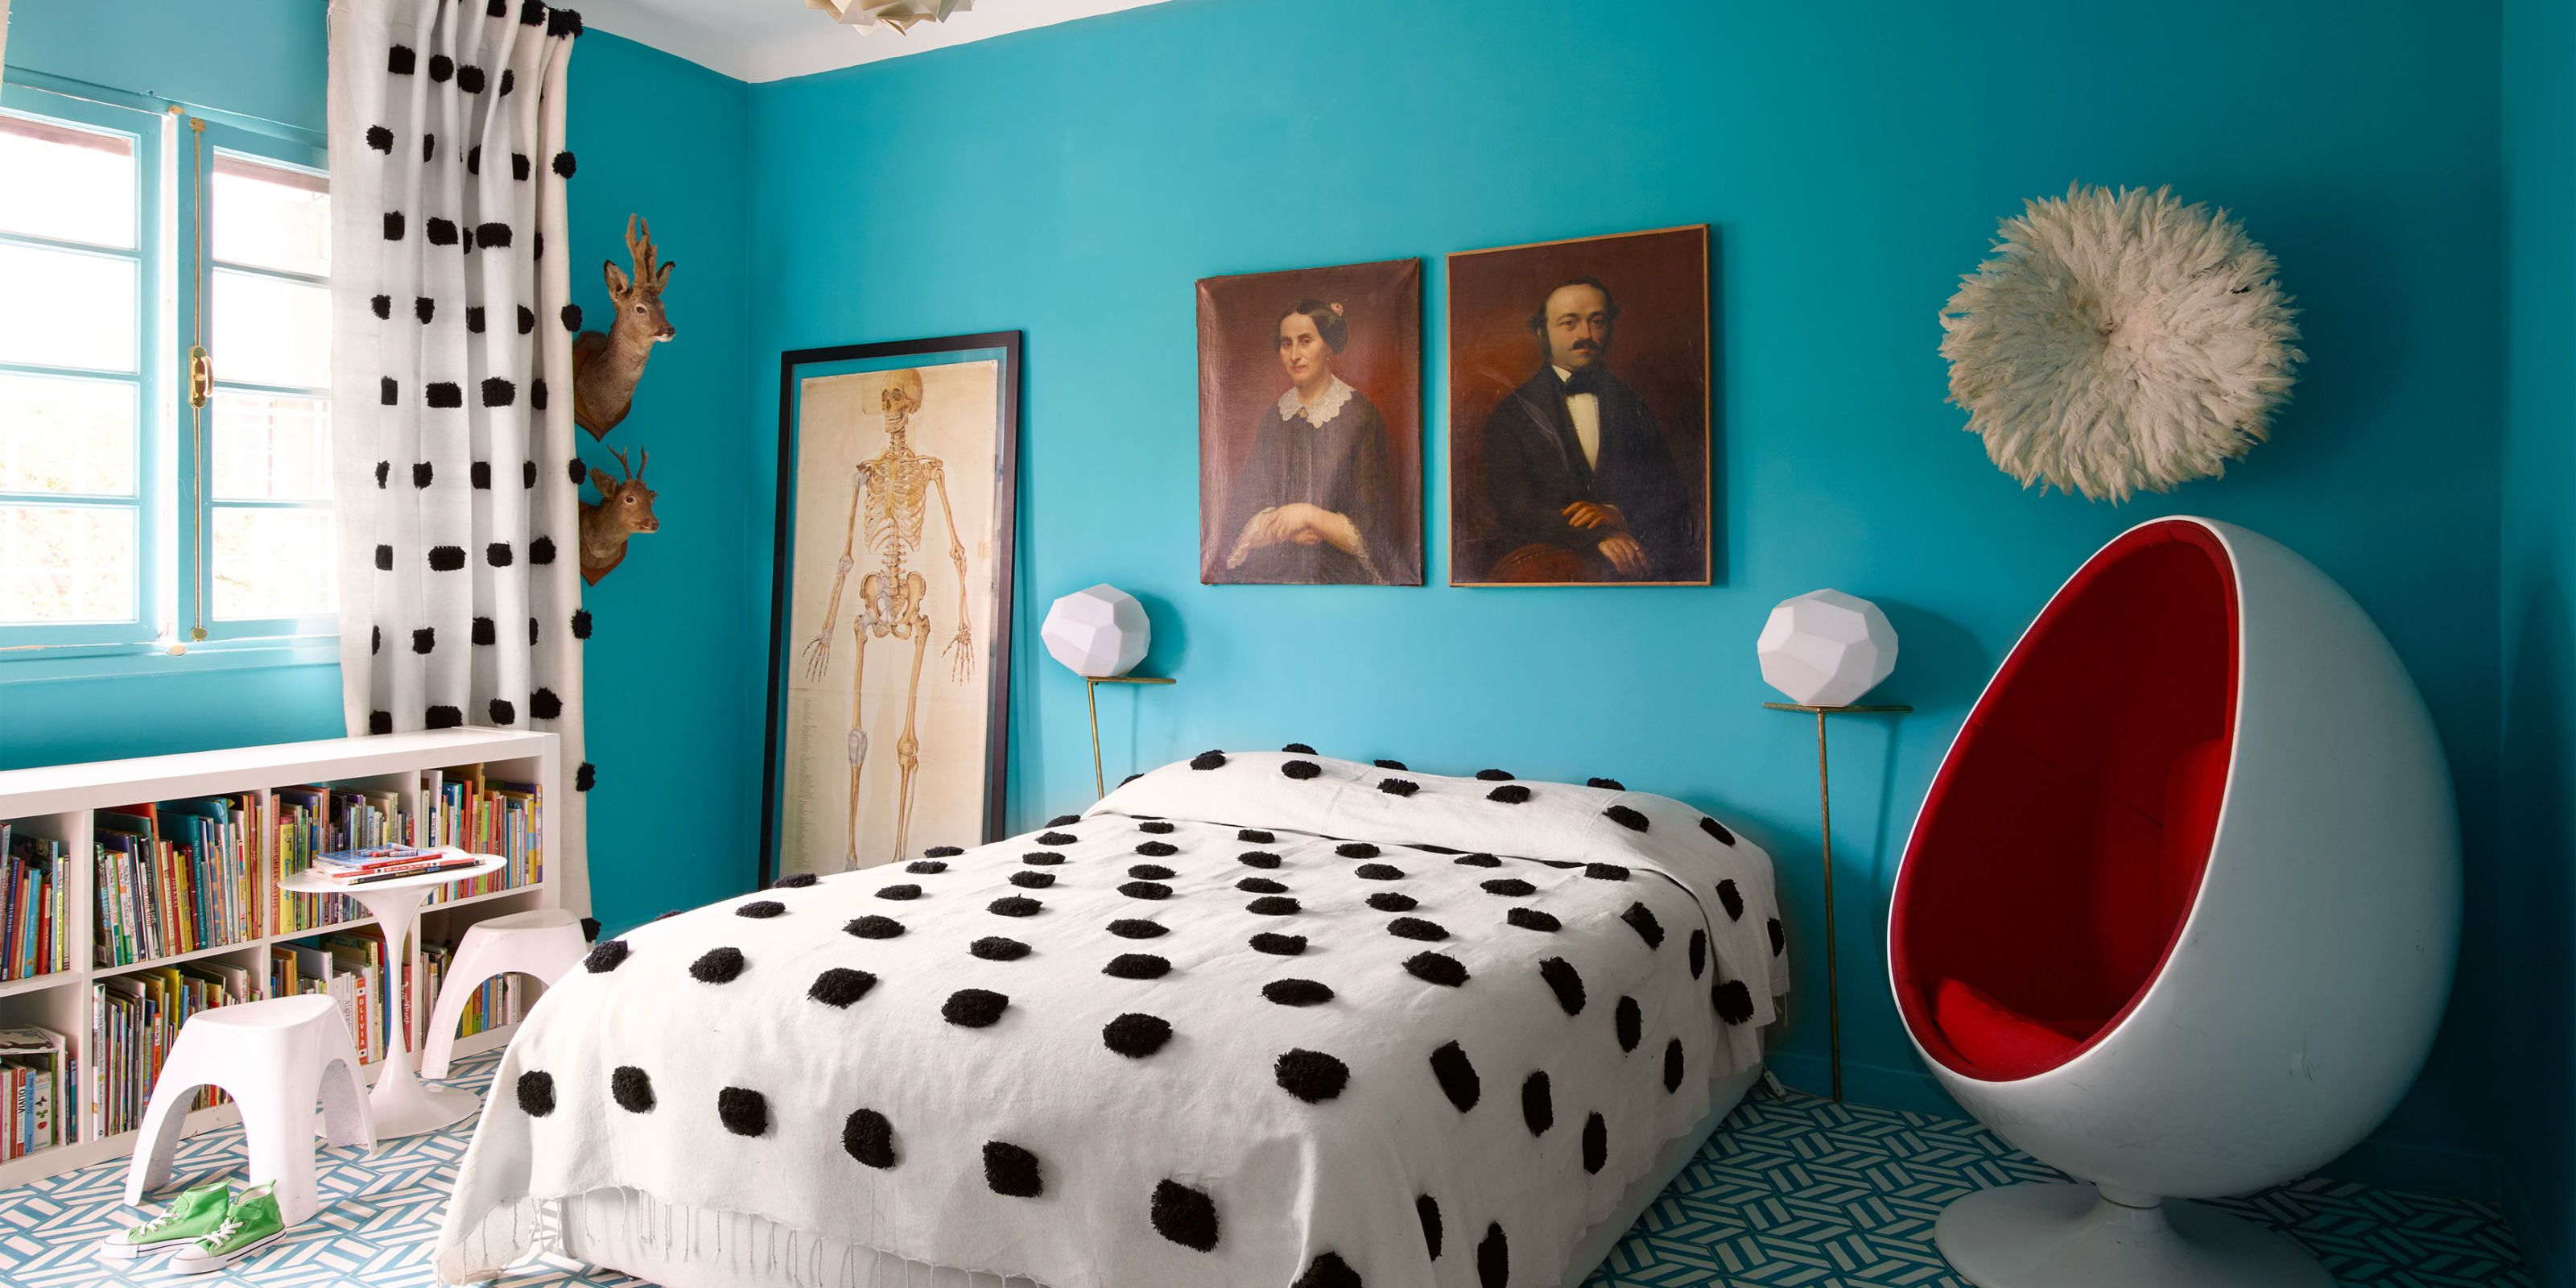 Room Decor Ideas New At Images of Ideas